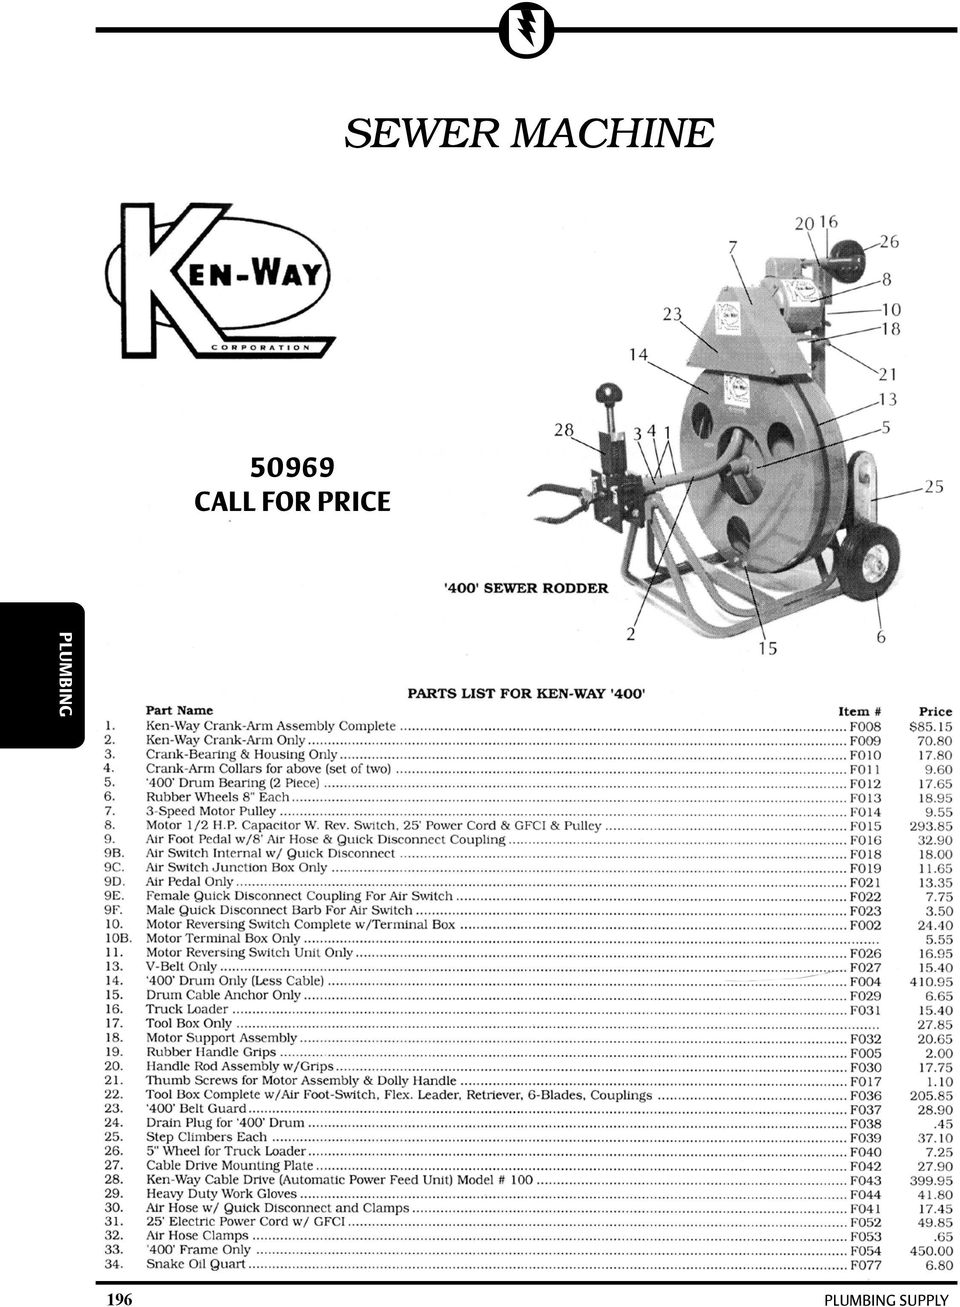 Plumbing Table Of Contents American Standard Parts 202 Indiana Bathroom Sink Diagram Installation Diagrams R 21 Sewer Machine Special Order Call For Price Cable Only 3 8 X 75 Drop Head Unlimited Supplies 4946 Center Park Blvd San